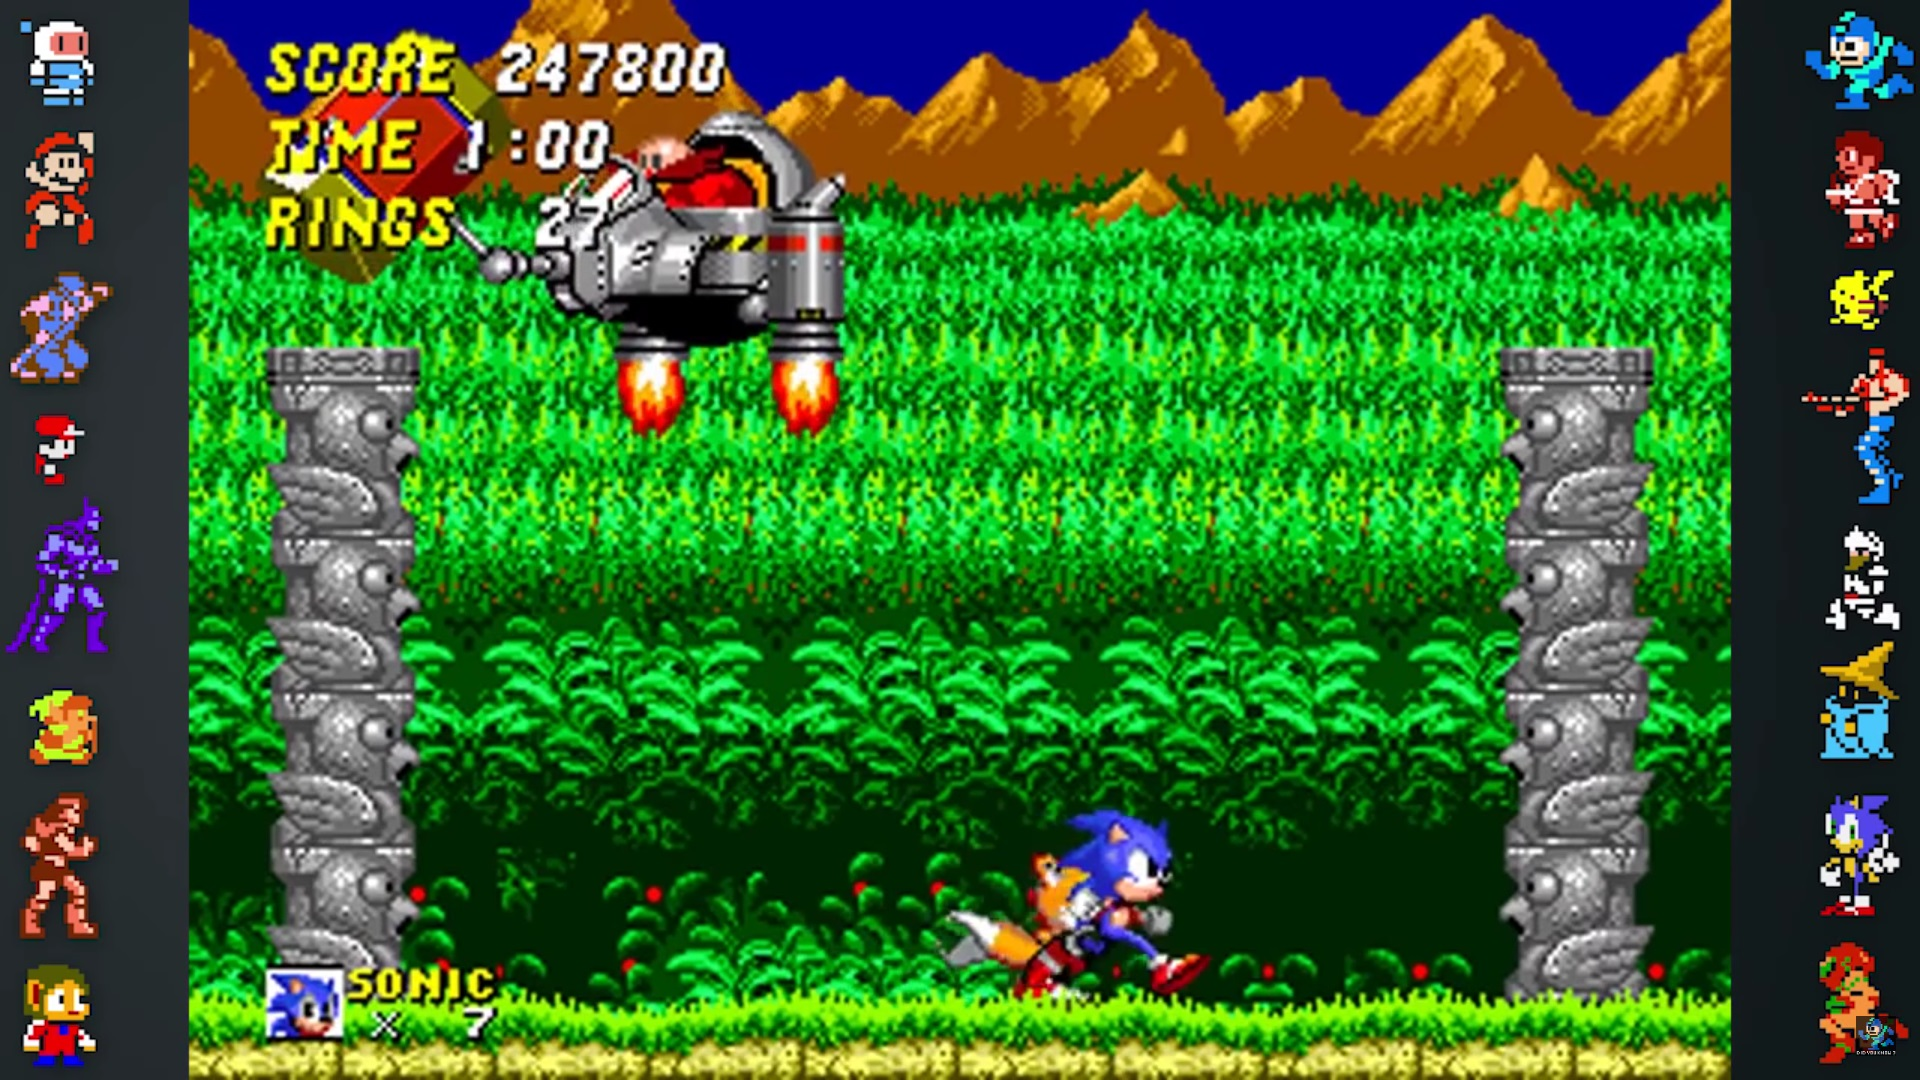 Learn The Background Story Of Dr Eggman In Sonic The Hedgehog Gametyrant